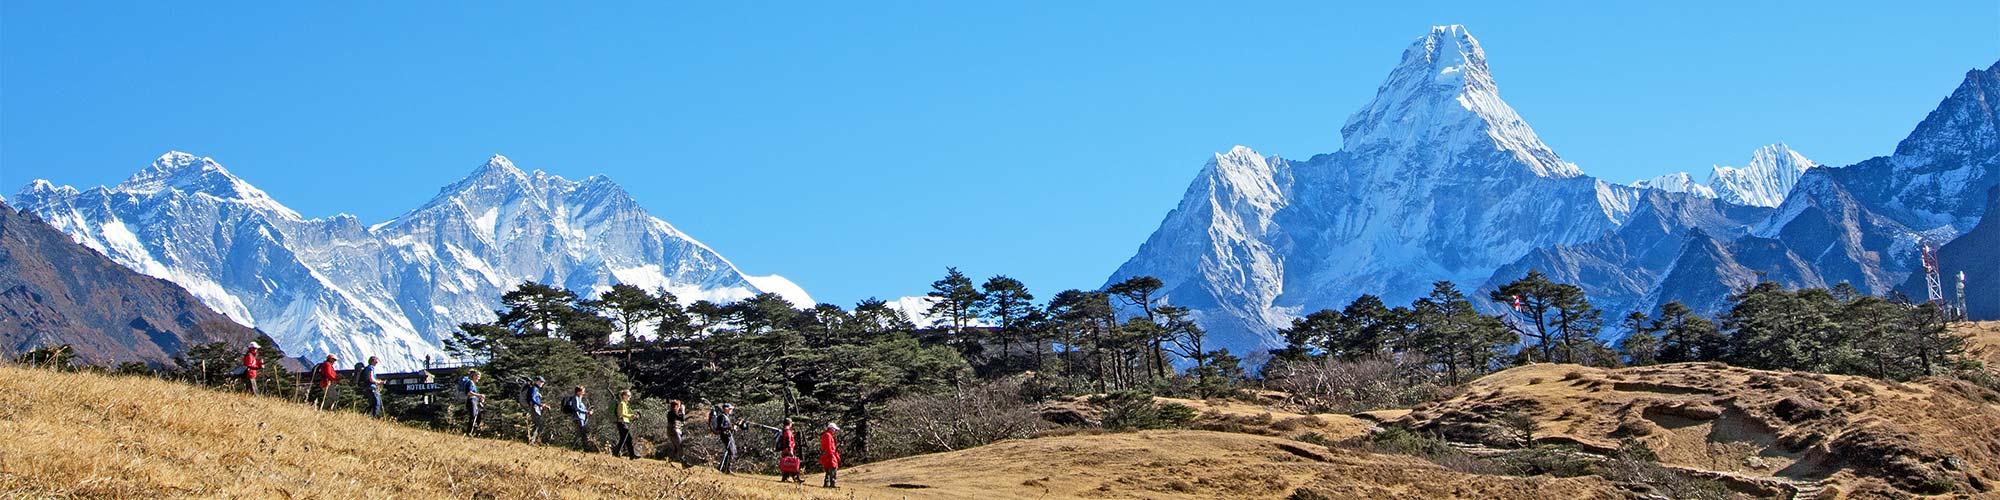 Everest-Trekking in Himalaya